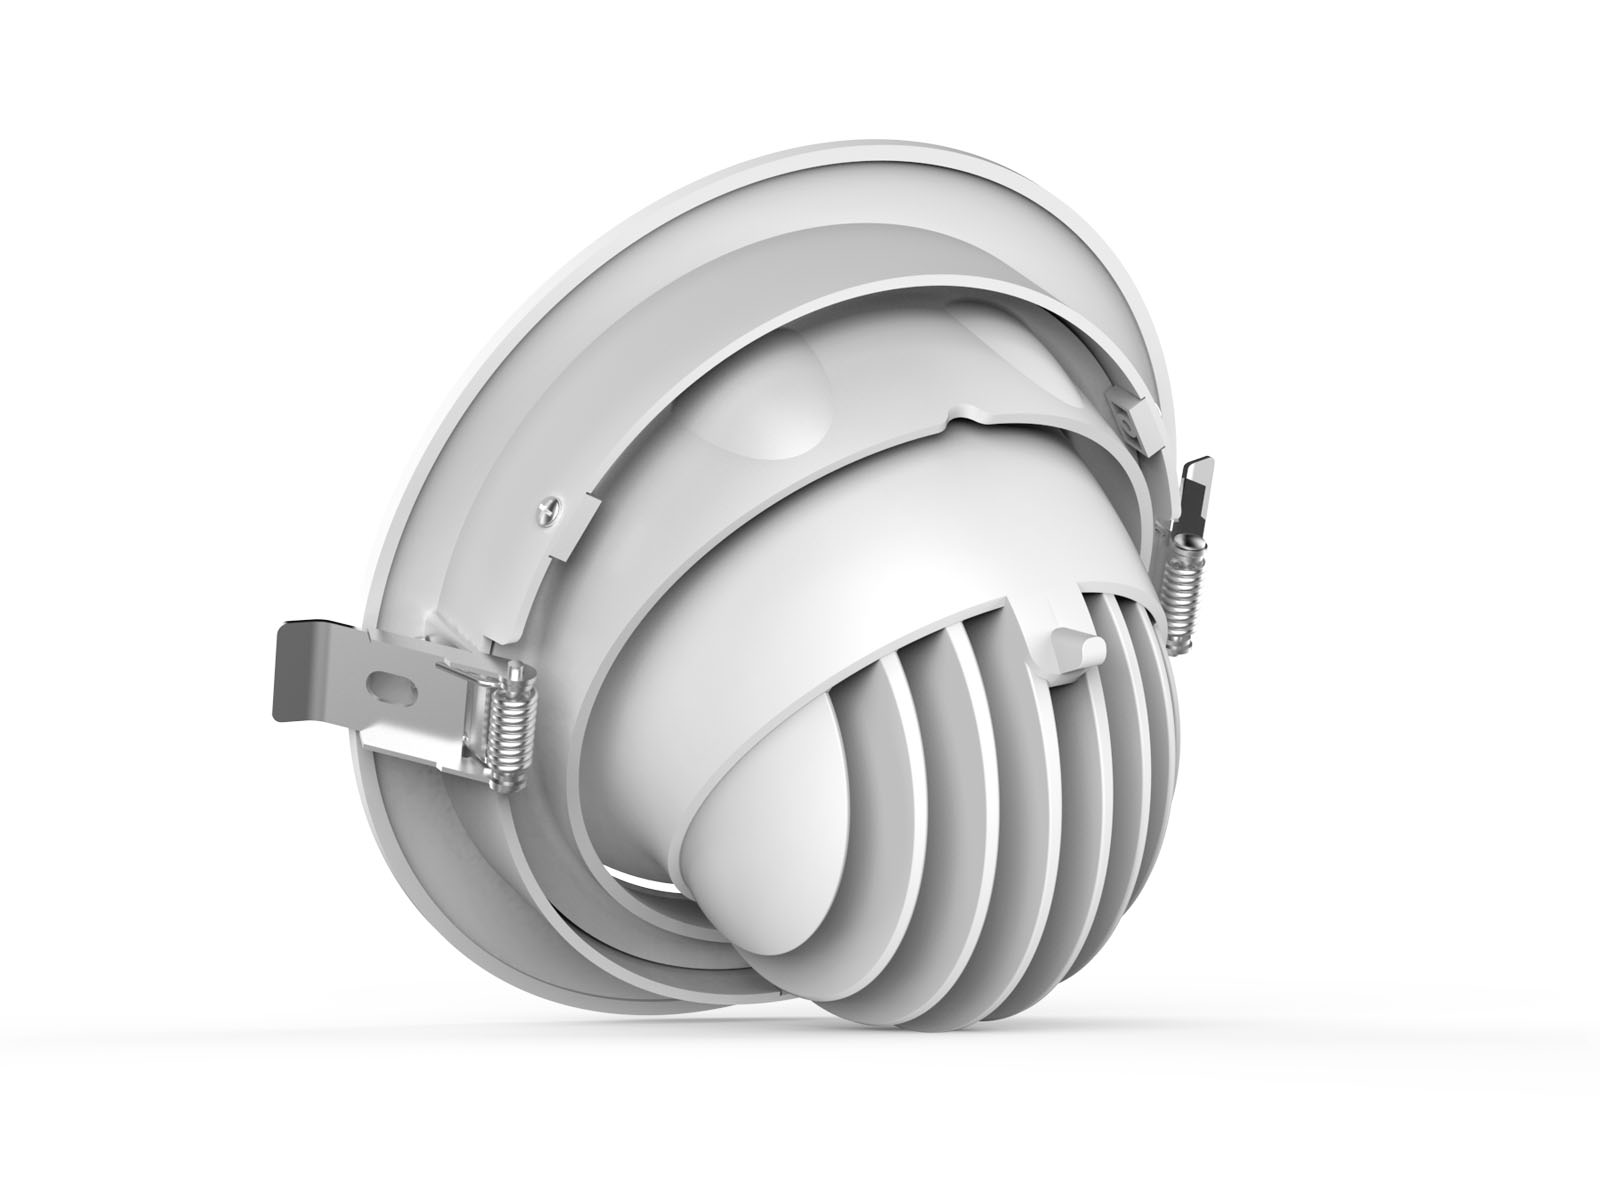 DL77 3 retrofit commercial led downlight